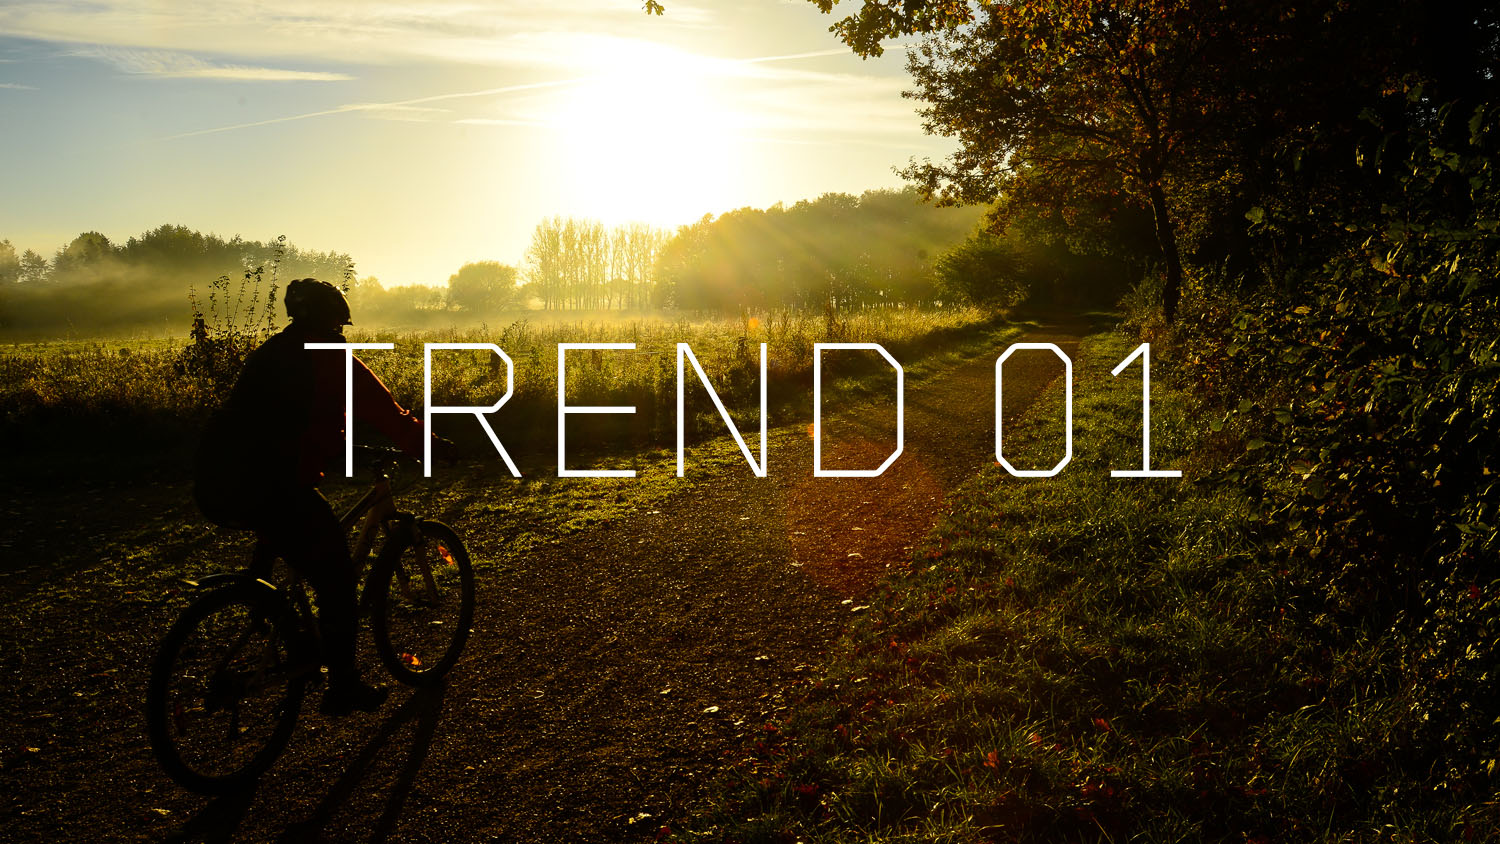 Trendreport 5 digitale Marketing Trends 2020 - 2022, Trend 1